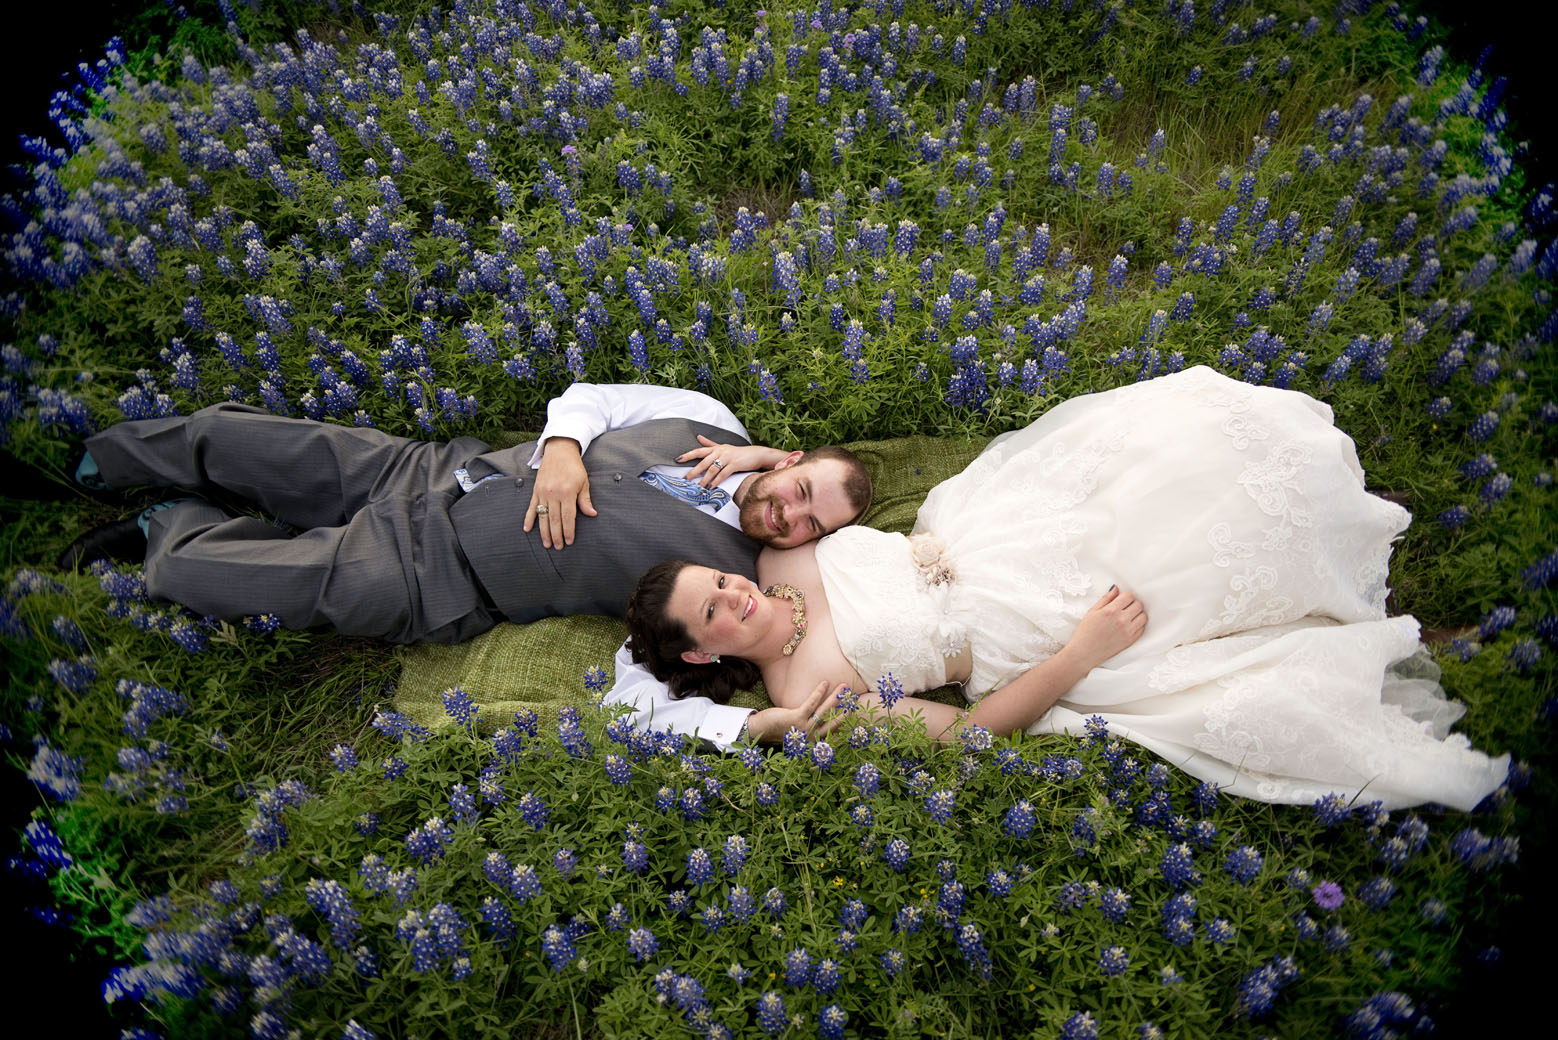 bluebonnets plus bride plus groom